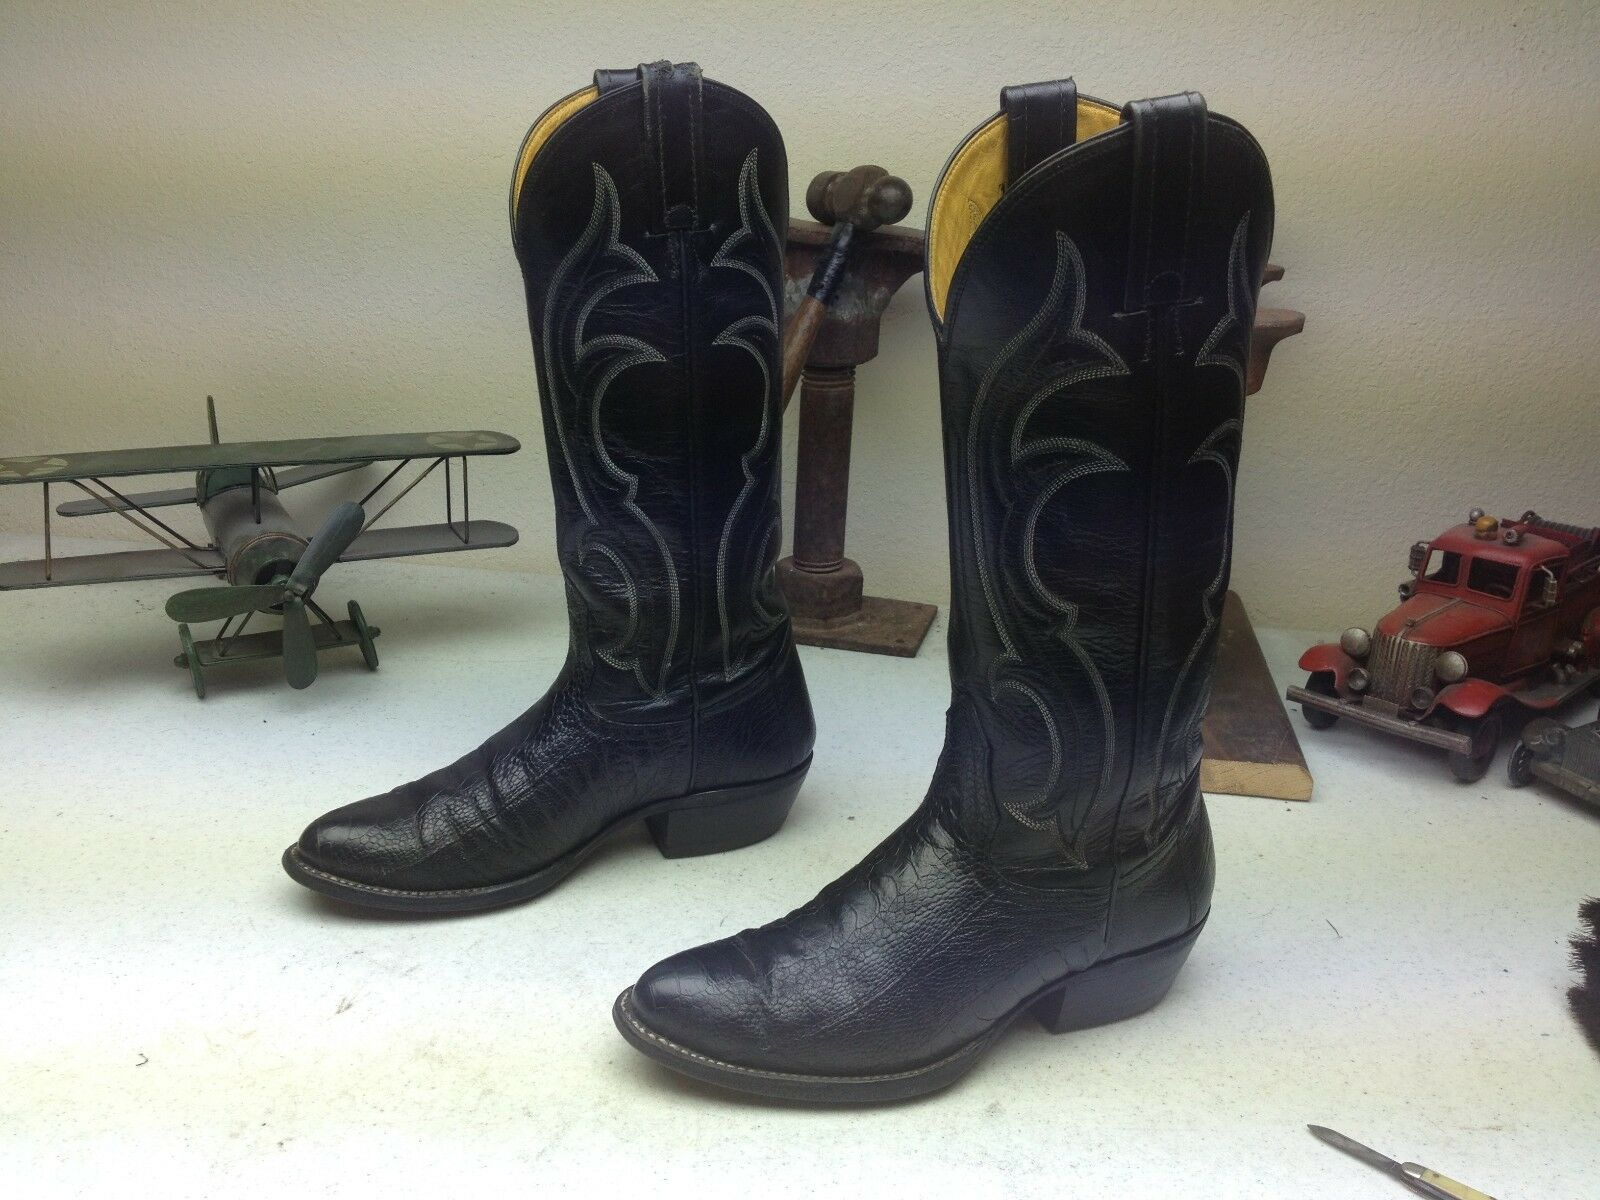 NOCONA BLACK OSTRICH LEATHER WESTERN COWBOY ROCKABILLY DANCE BOOTS SIZE 4 B